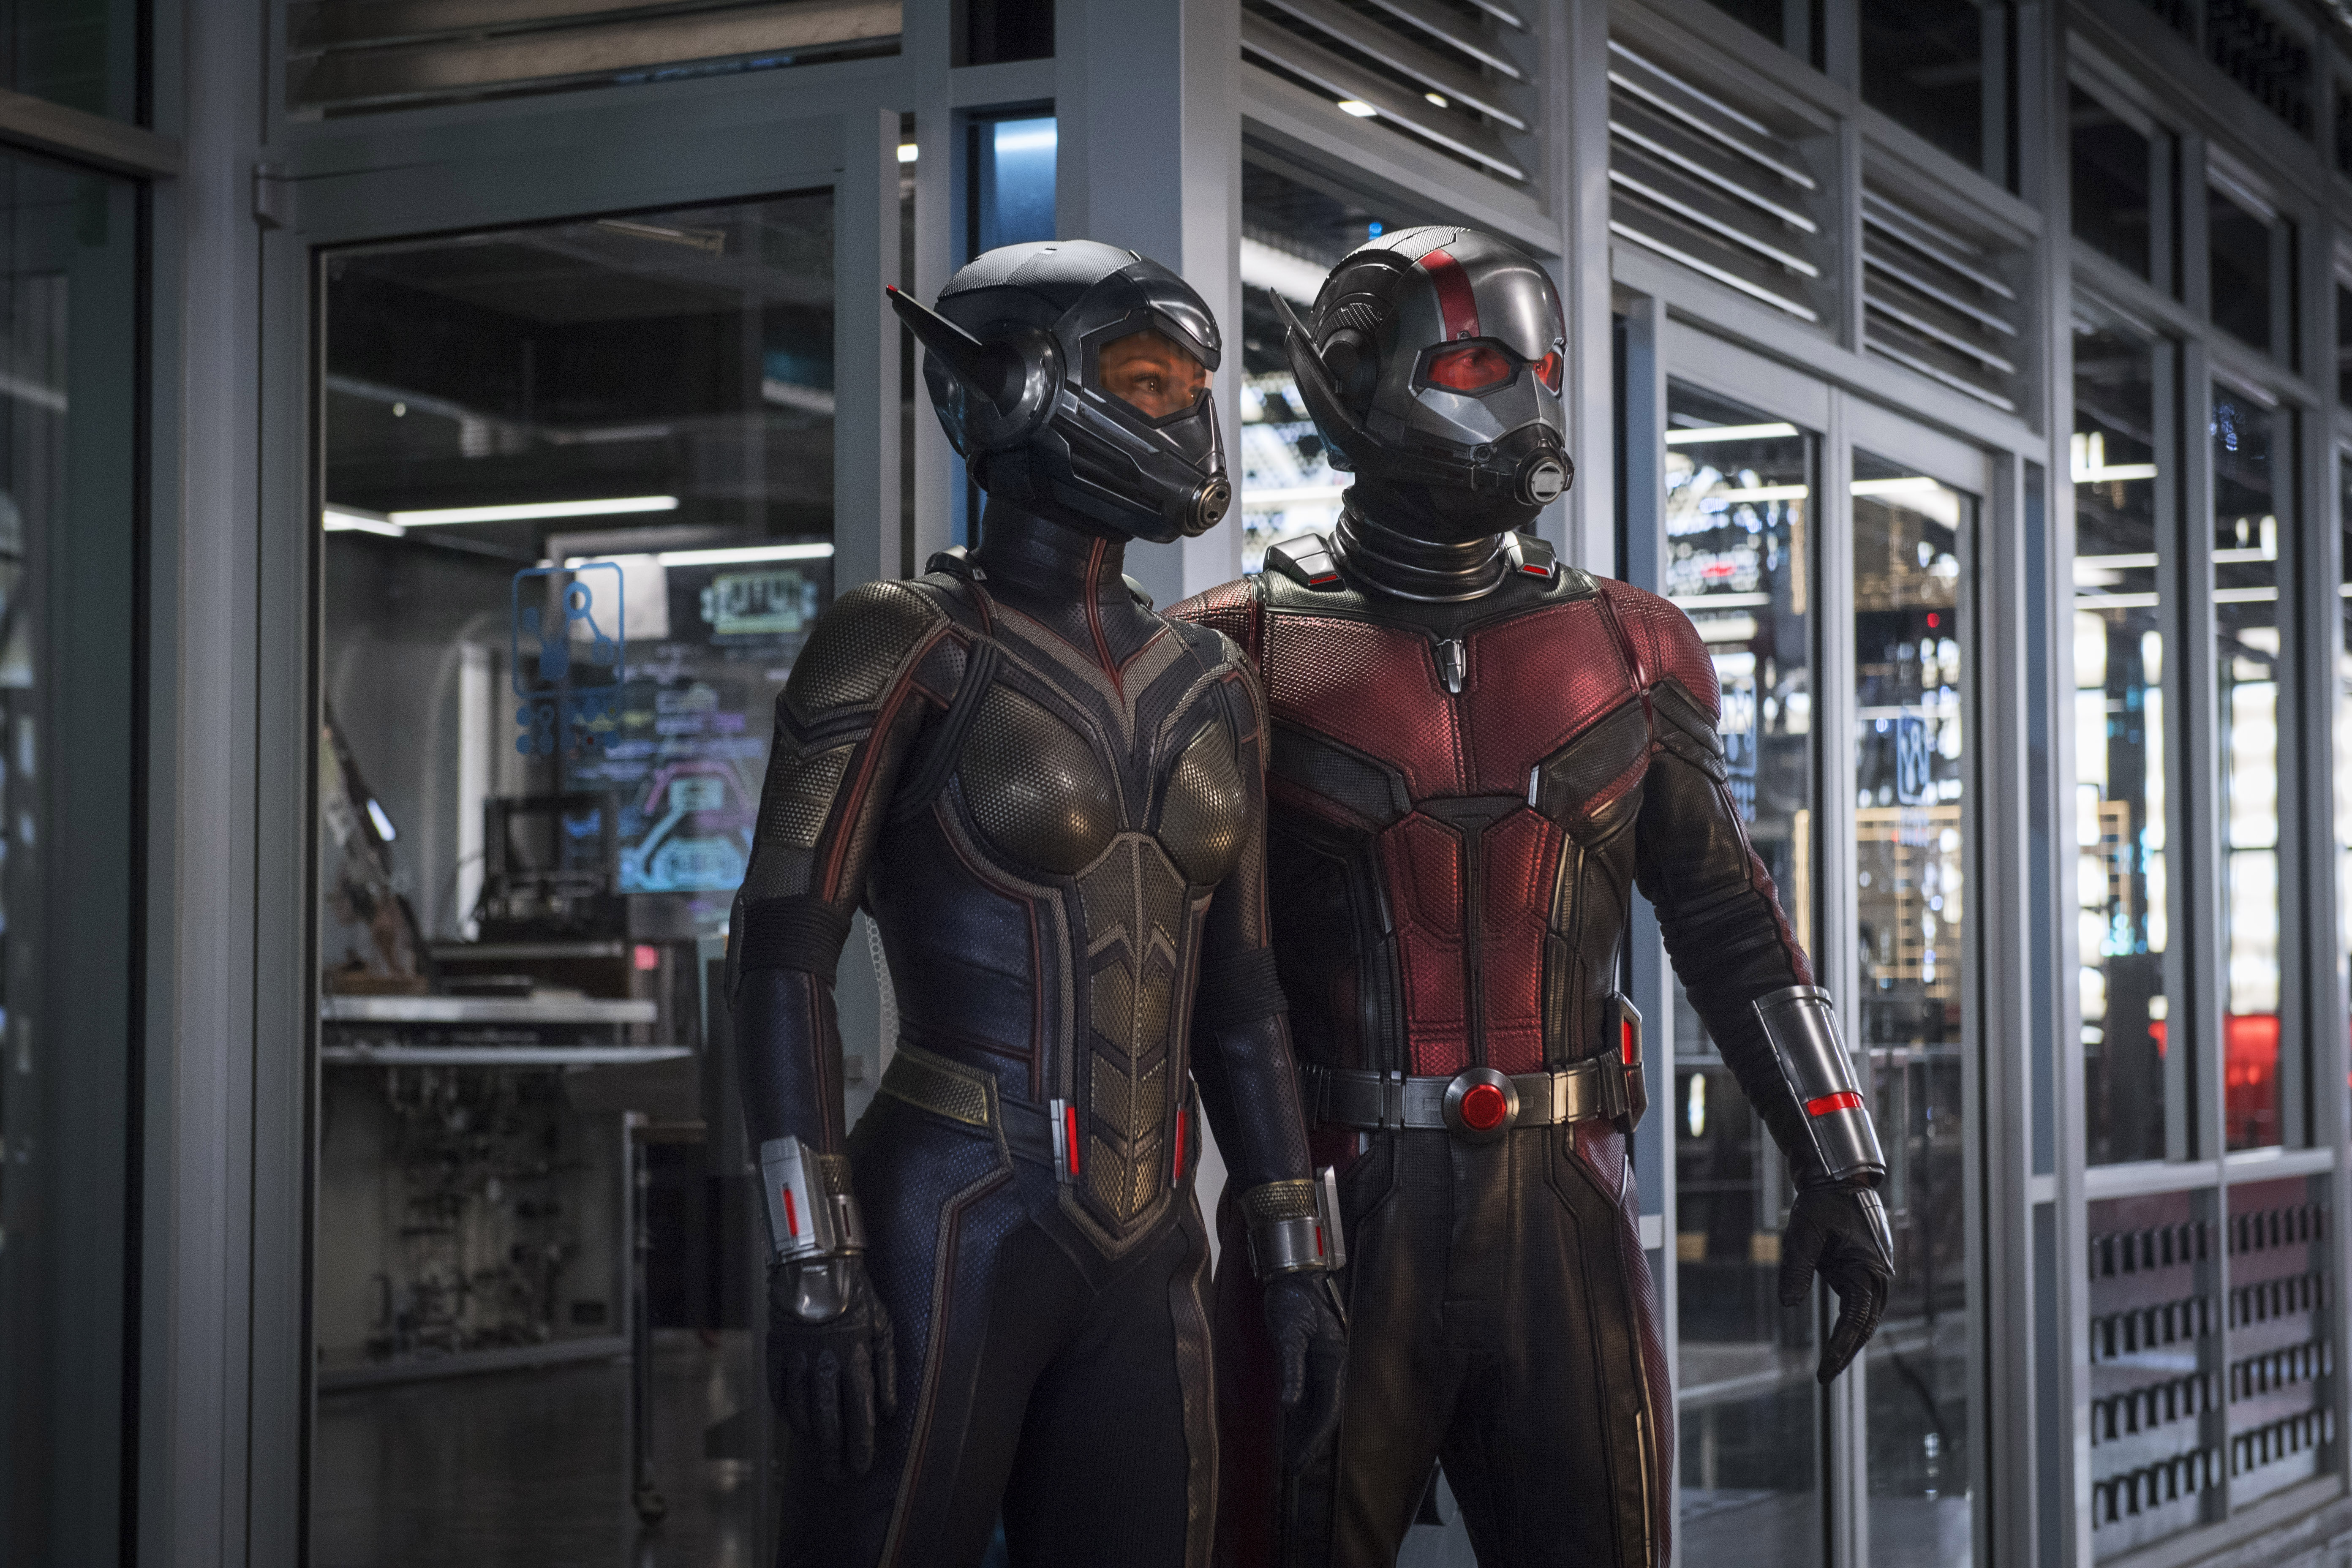 'Ant-Man and the Wasp' A Small But Mighty Sequel